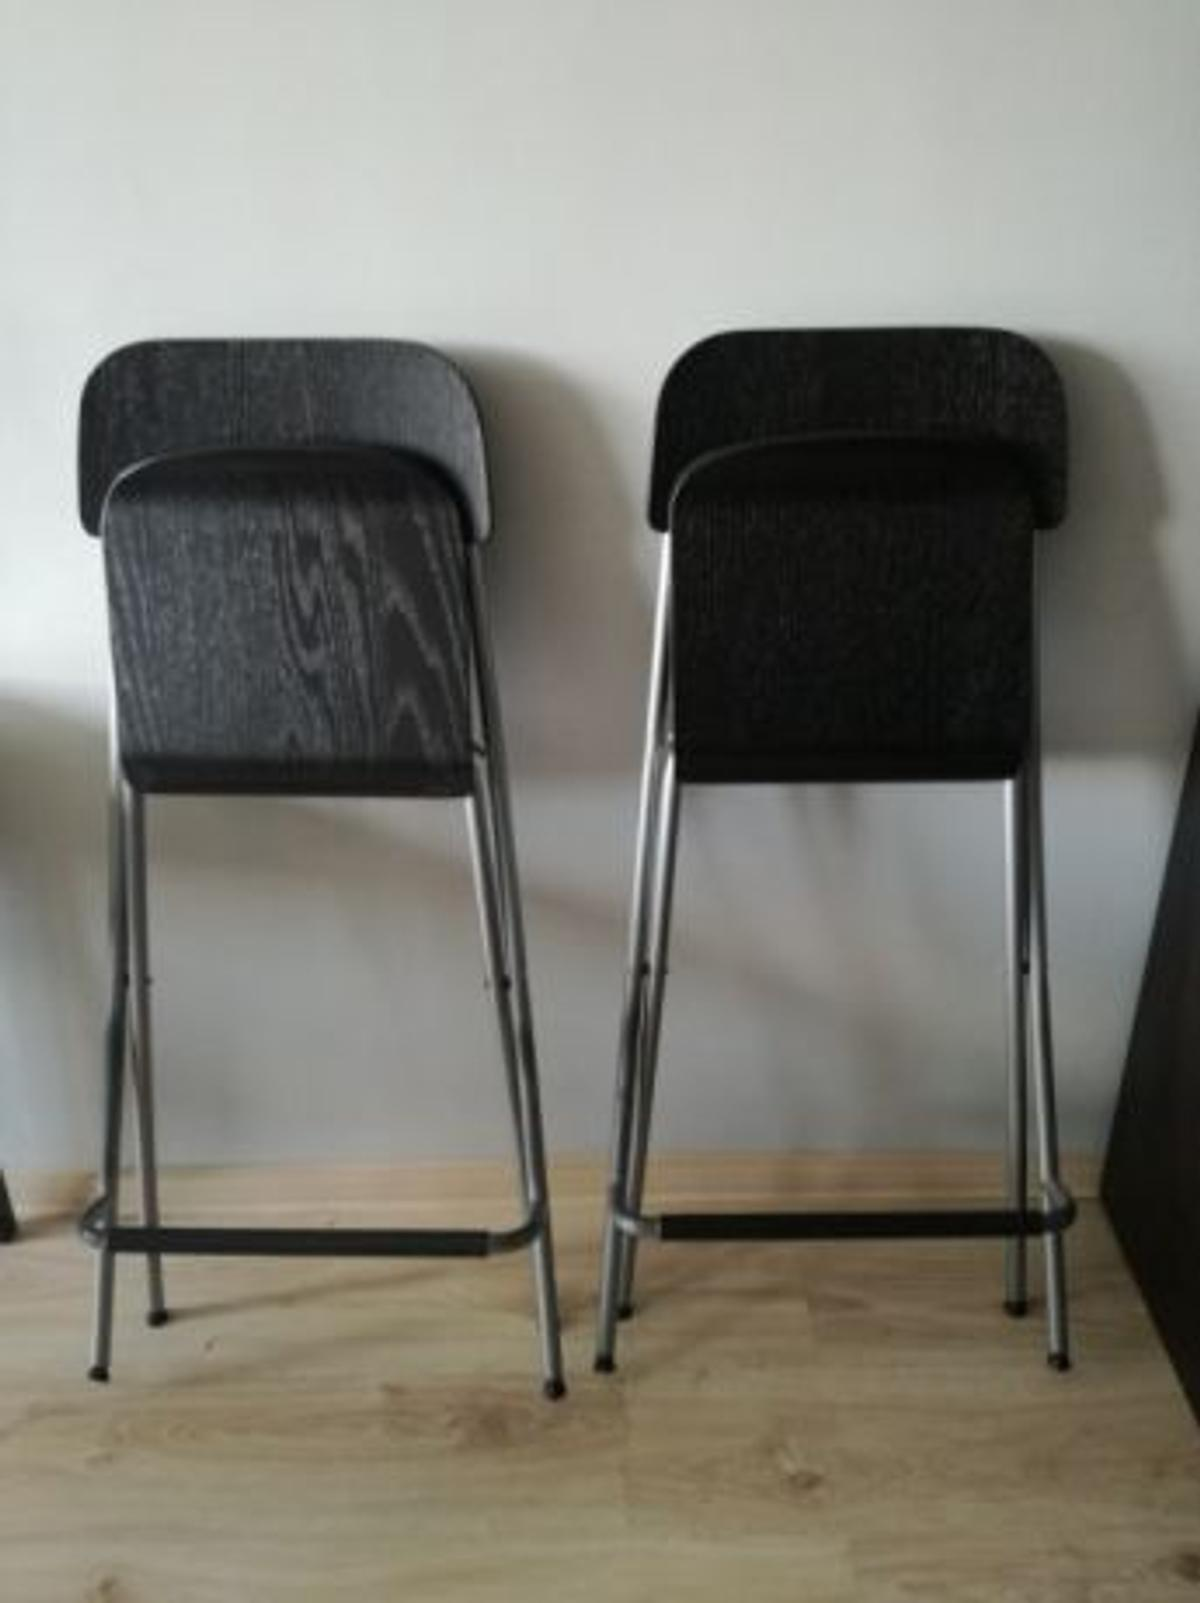 Fantastic 2 X Ikea Franklin Foldable Bar Stools Gmtry Best Dining Table And Chair Ideas Images Gmtryco